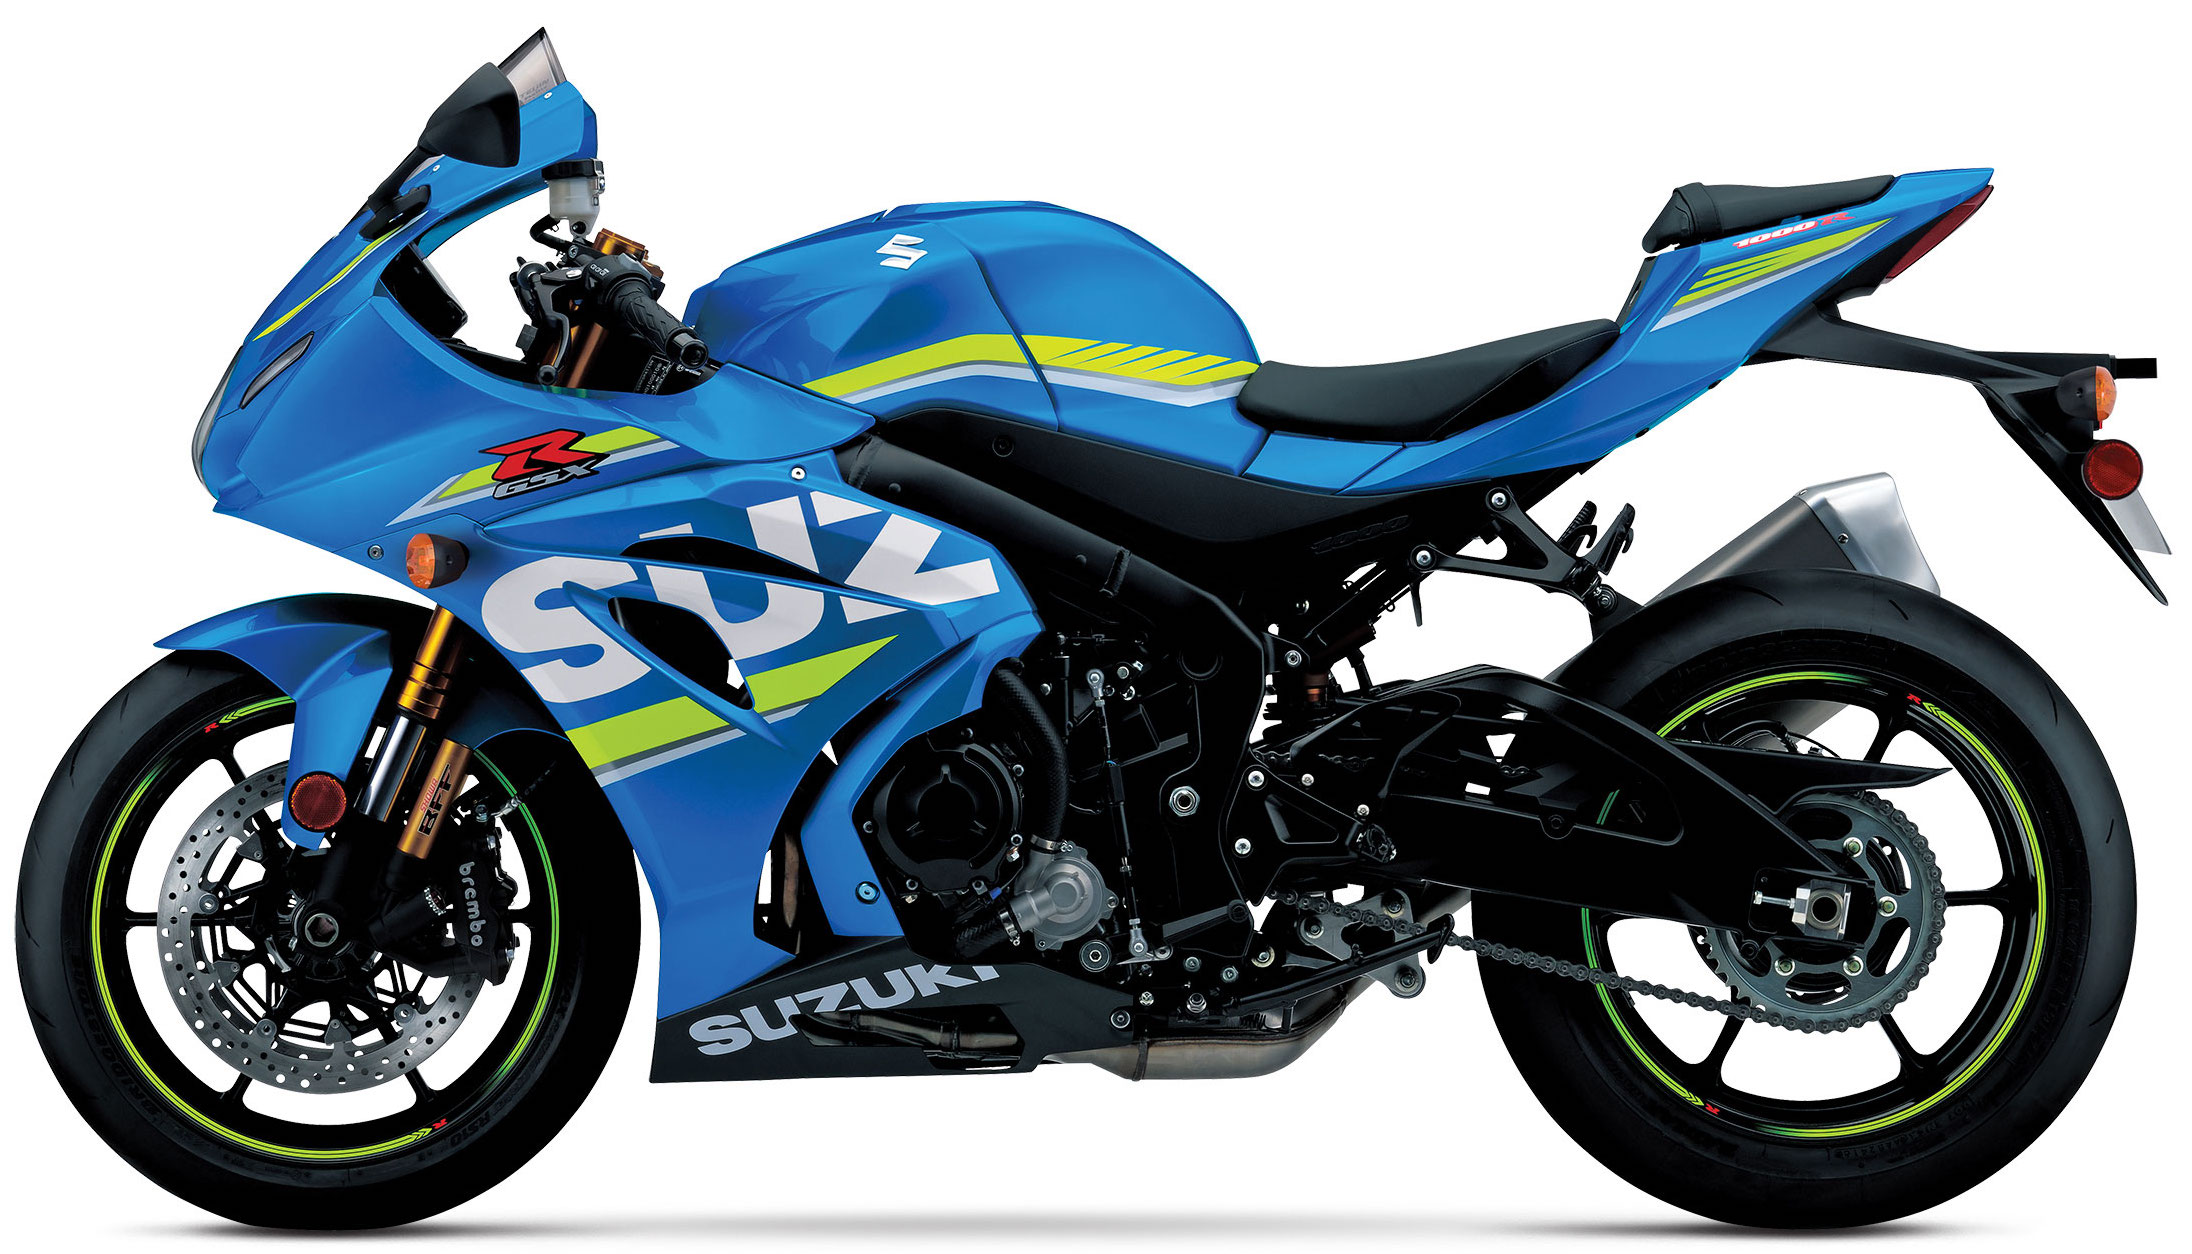 Confirmed >> 2017 Suzuki GSX-R 1000 and GSX-R 1000R L7 UK prices confirmed – from RM73,165 for base model ...